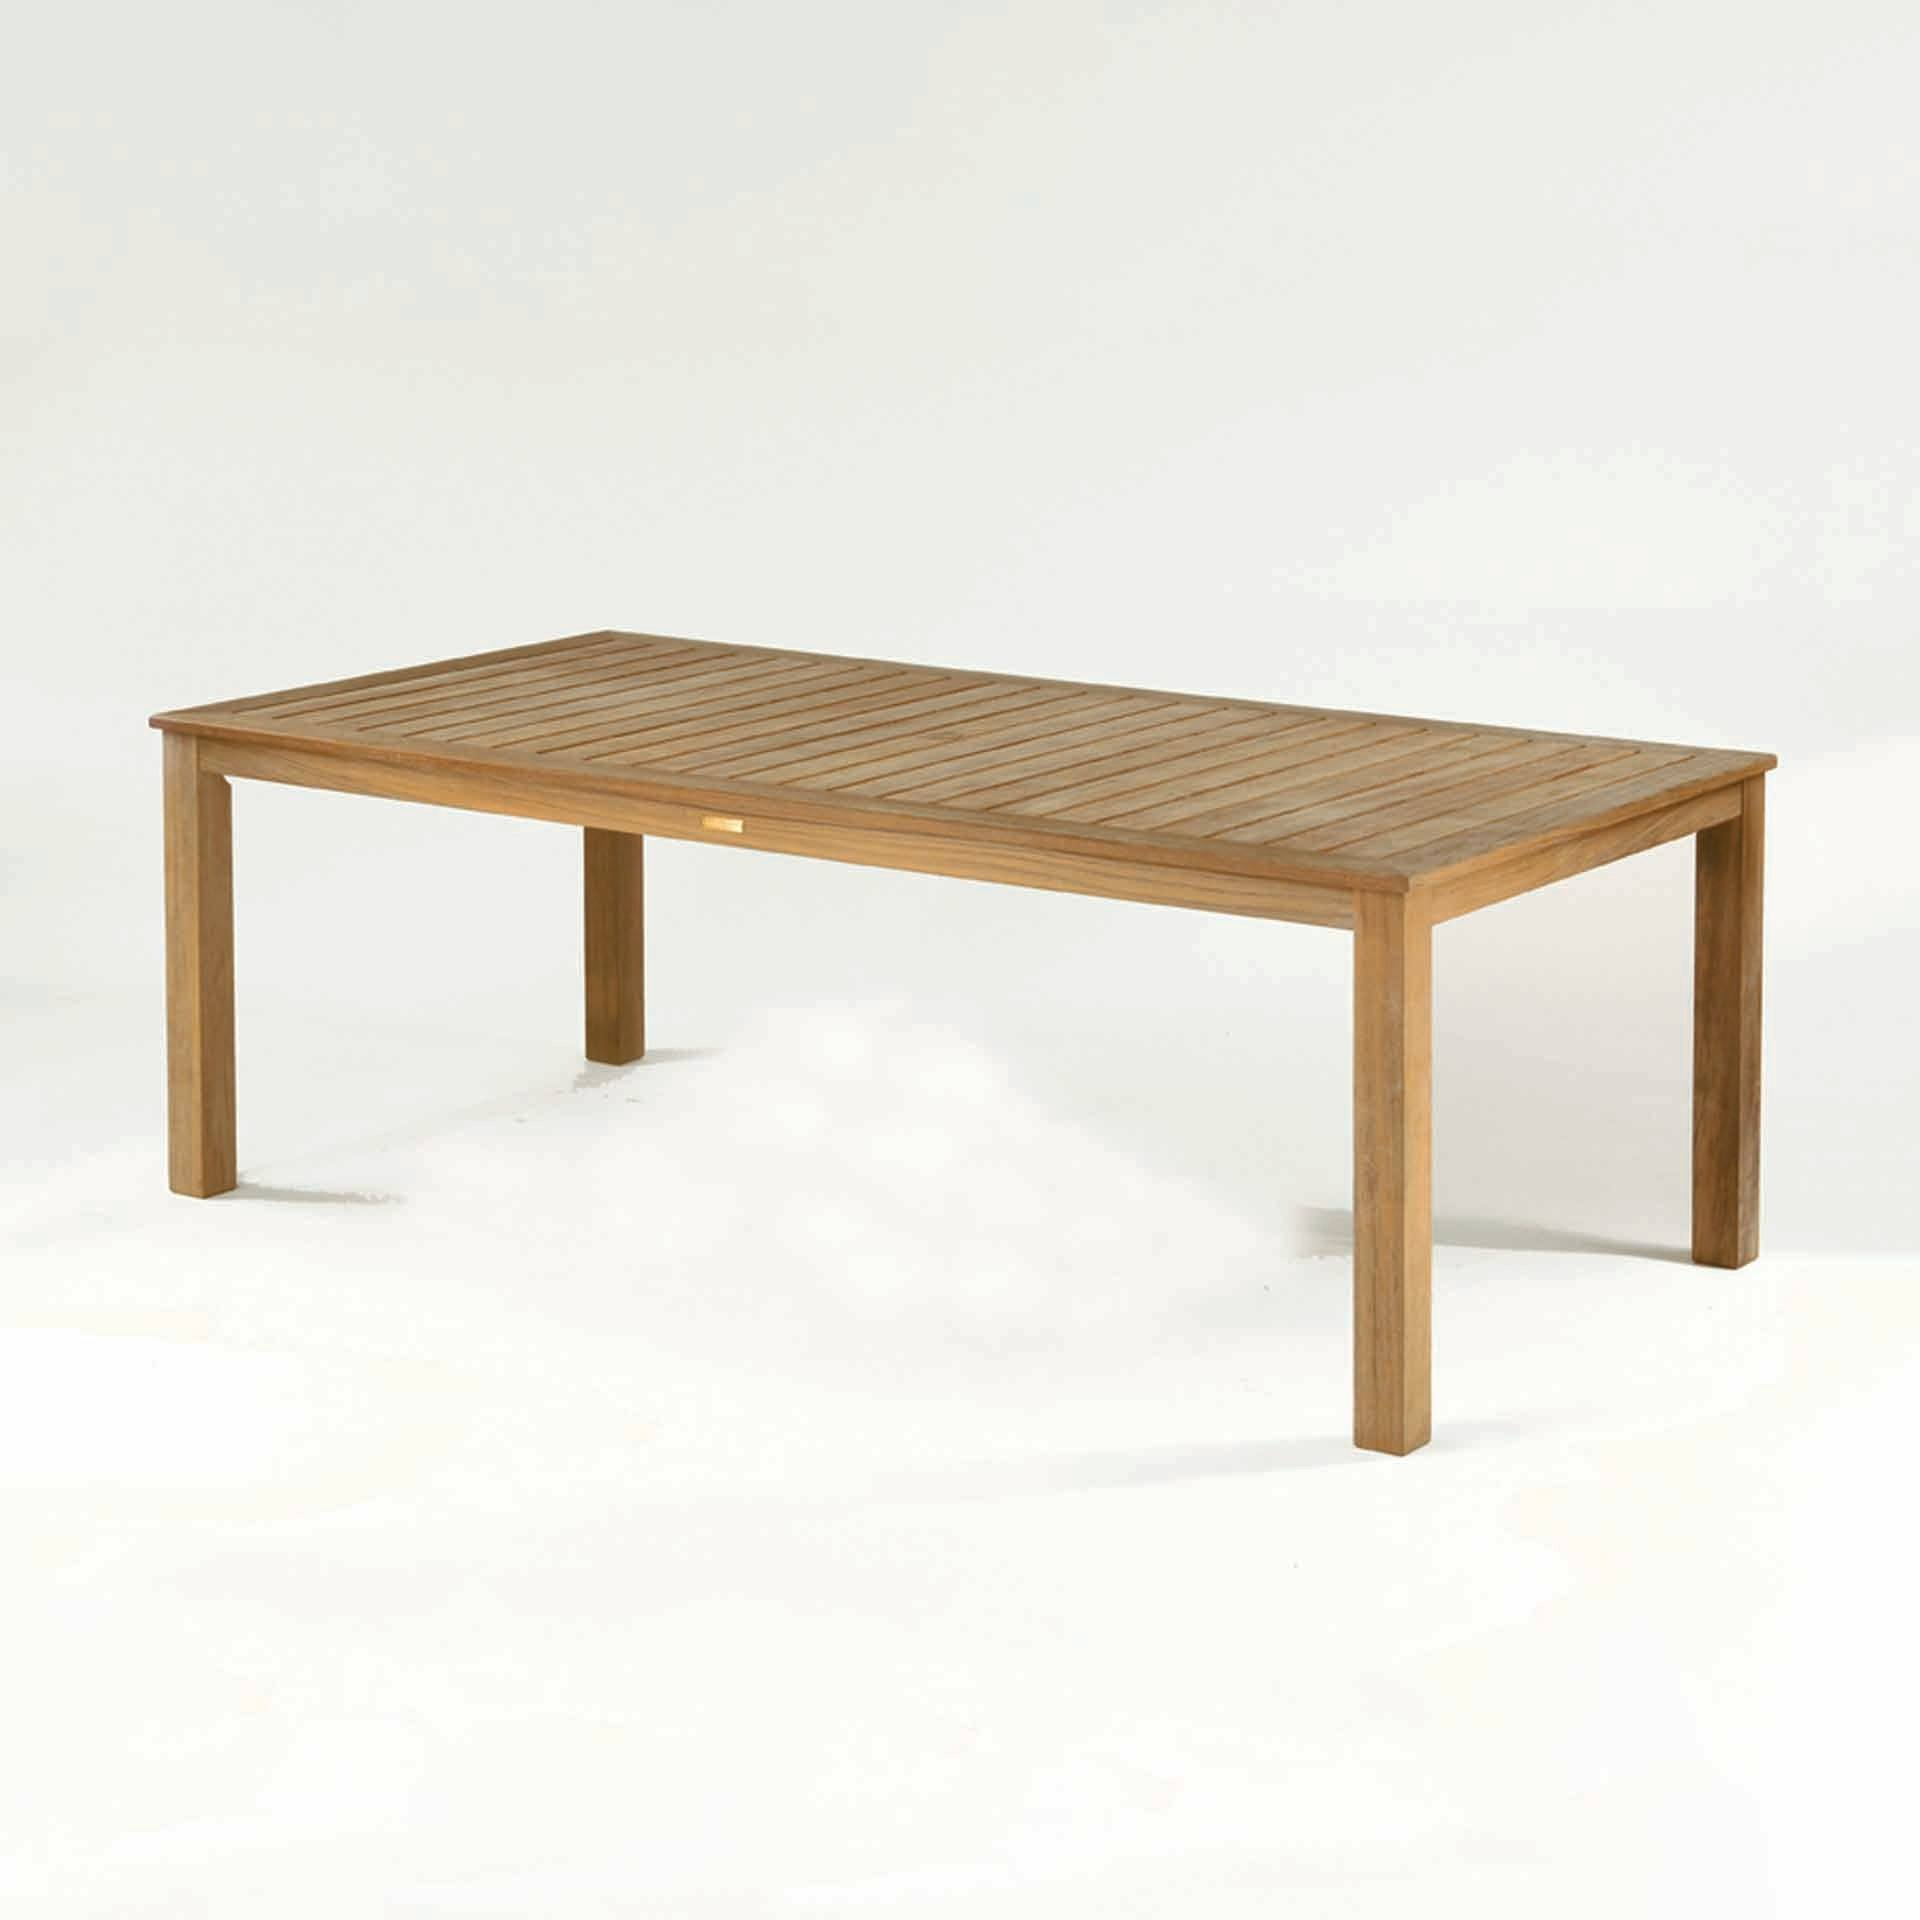 Kingsley bate wainscott 85x45 rectangular dining table for Table 85 restaurant